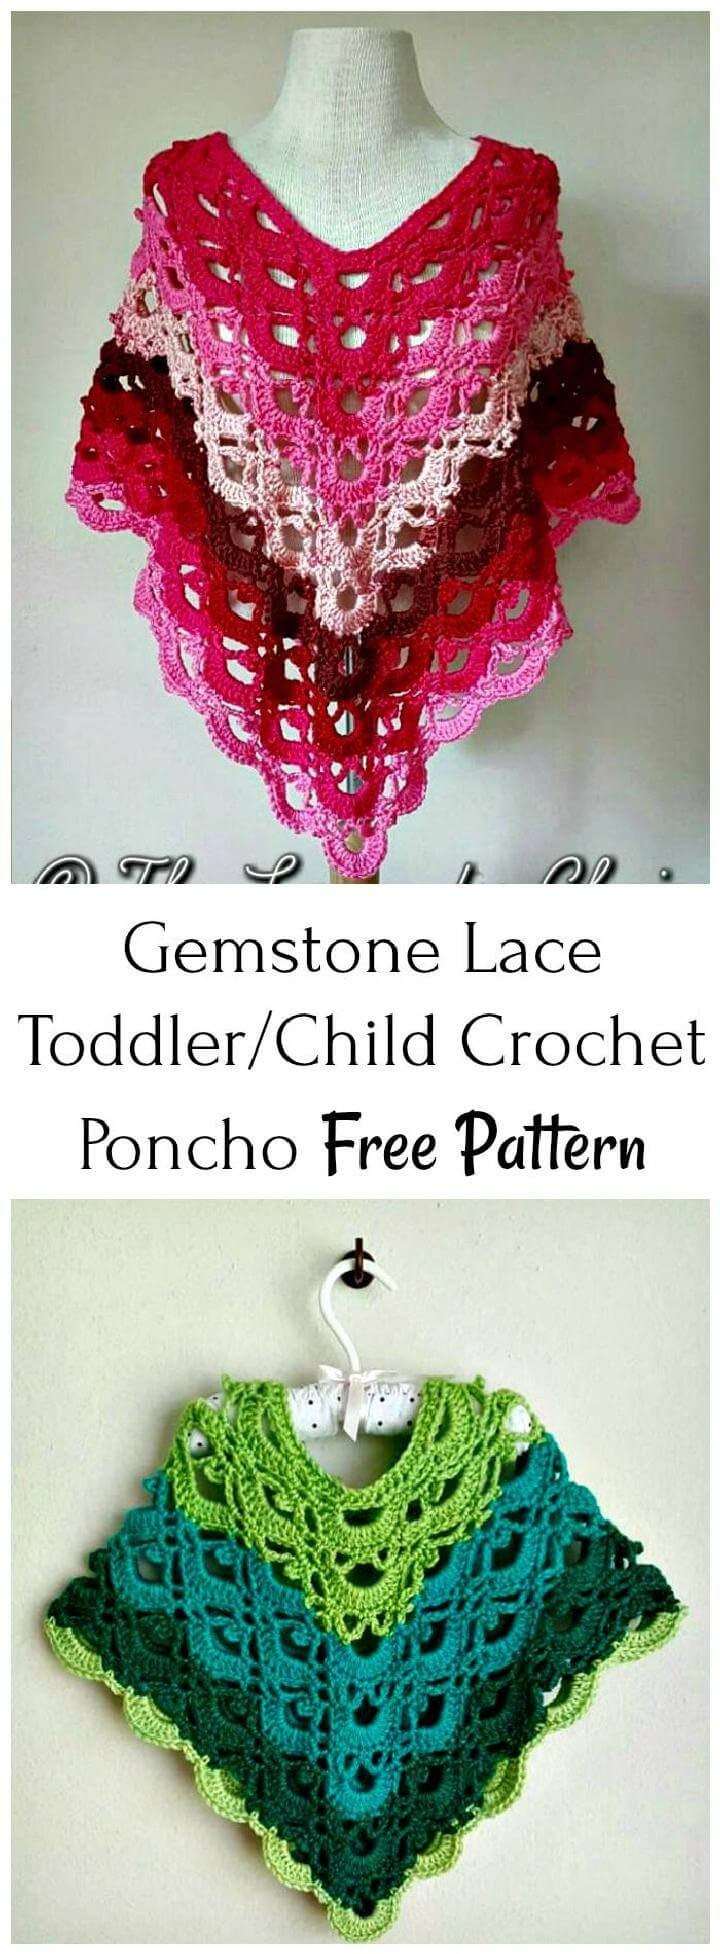 Fresh 20 Free Crochet Summer Poncho Patterns for Women S Diy toddler Poncho Crochet Pattern Of Great 46 Images toddler Poncho Crochet Pattern